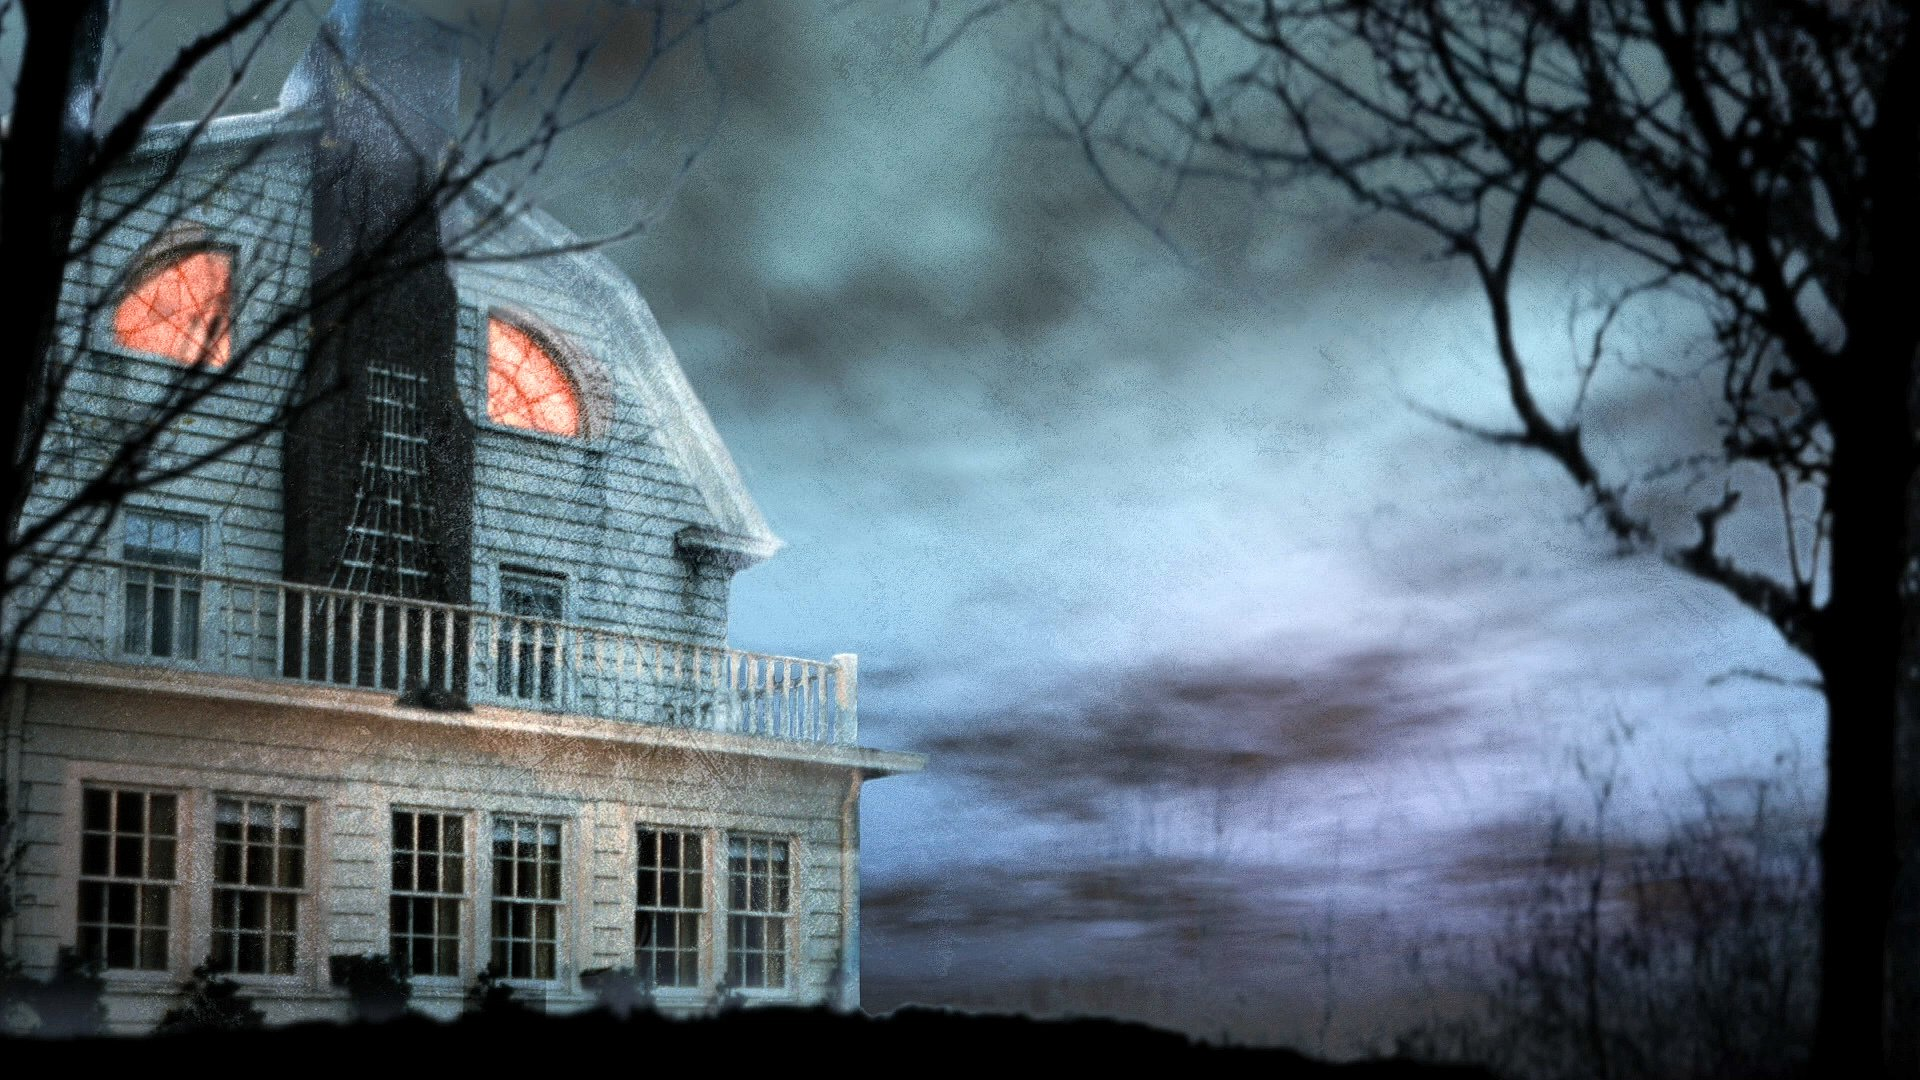 The Amityville Horror facts